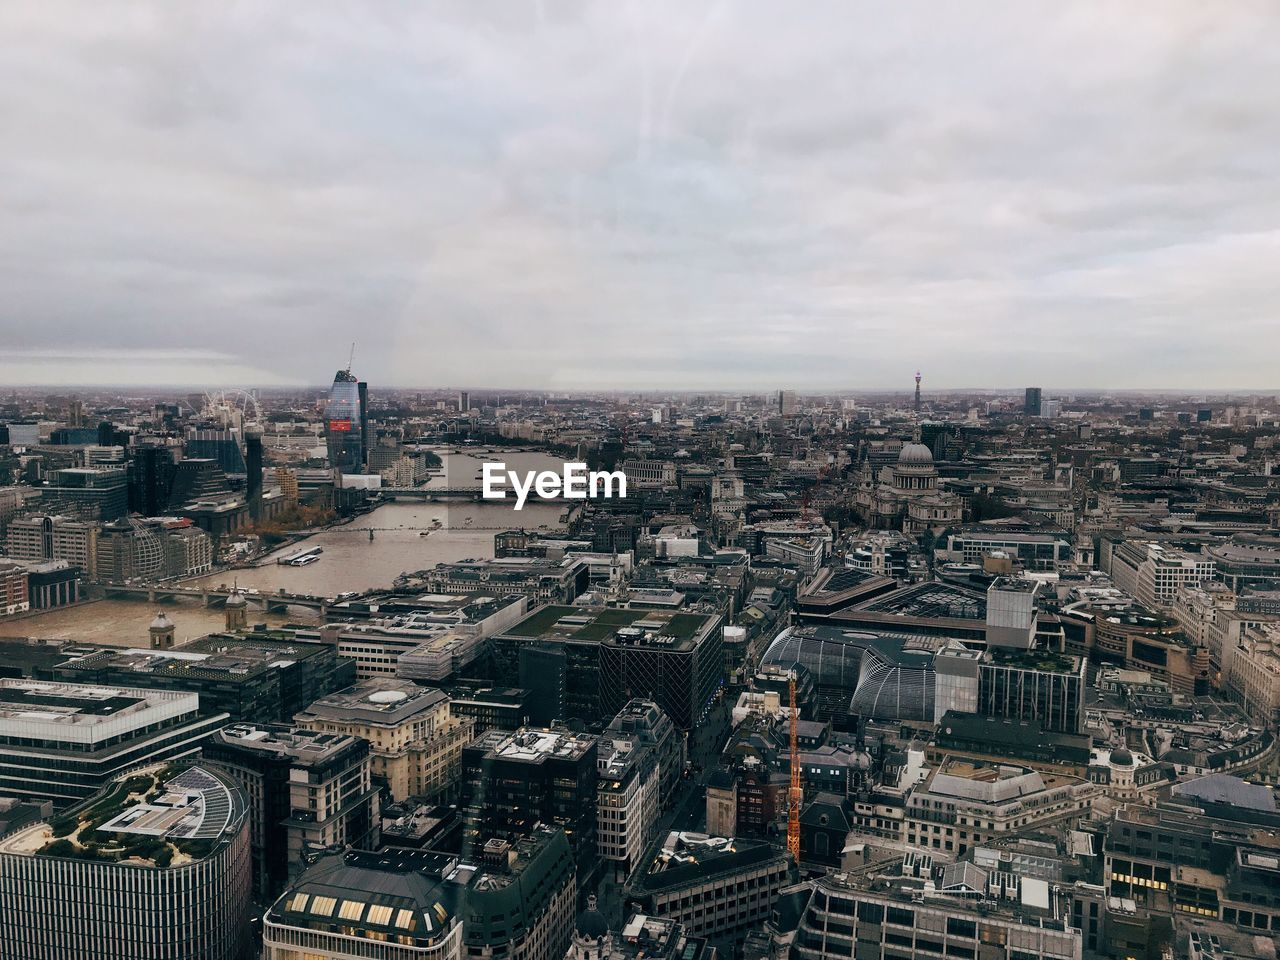 cityscape, architecture, city, building exterior, aerial view, sky, built structure, no people, skyscraper, outdoors, day